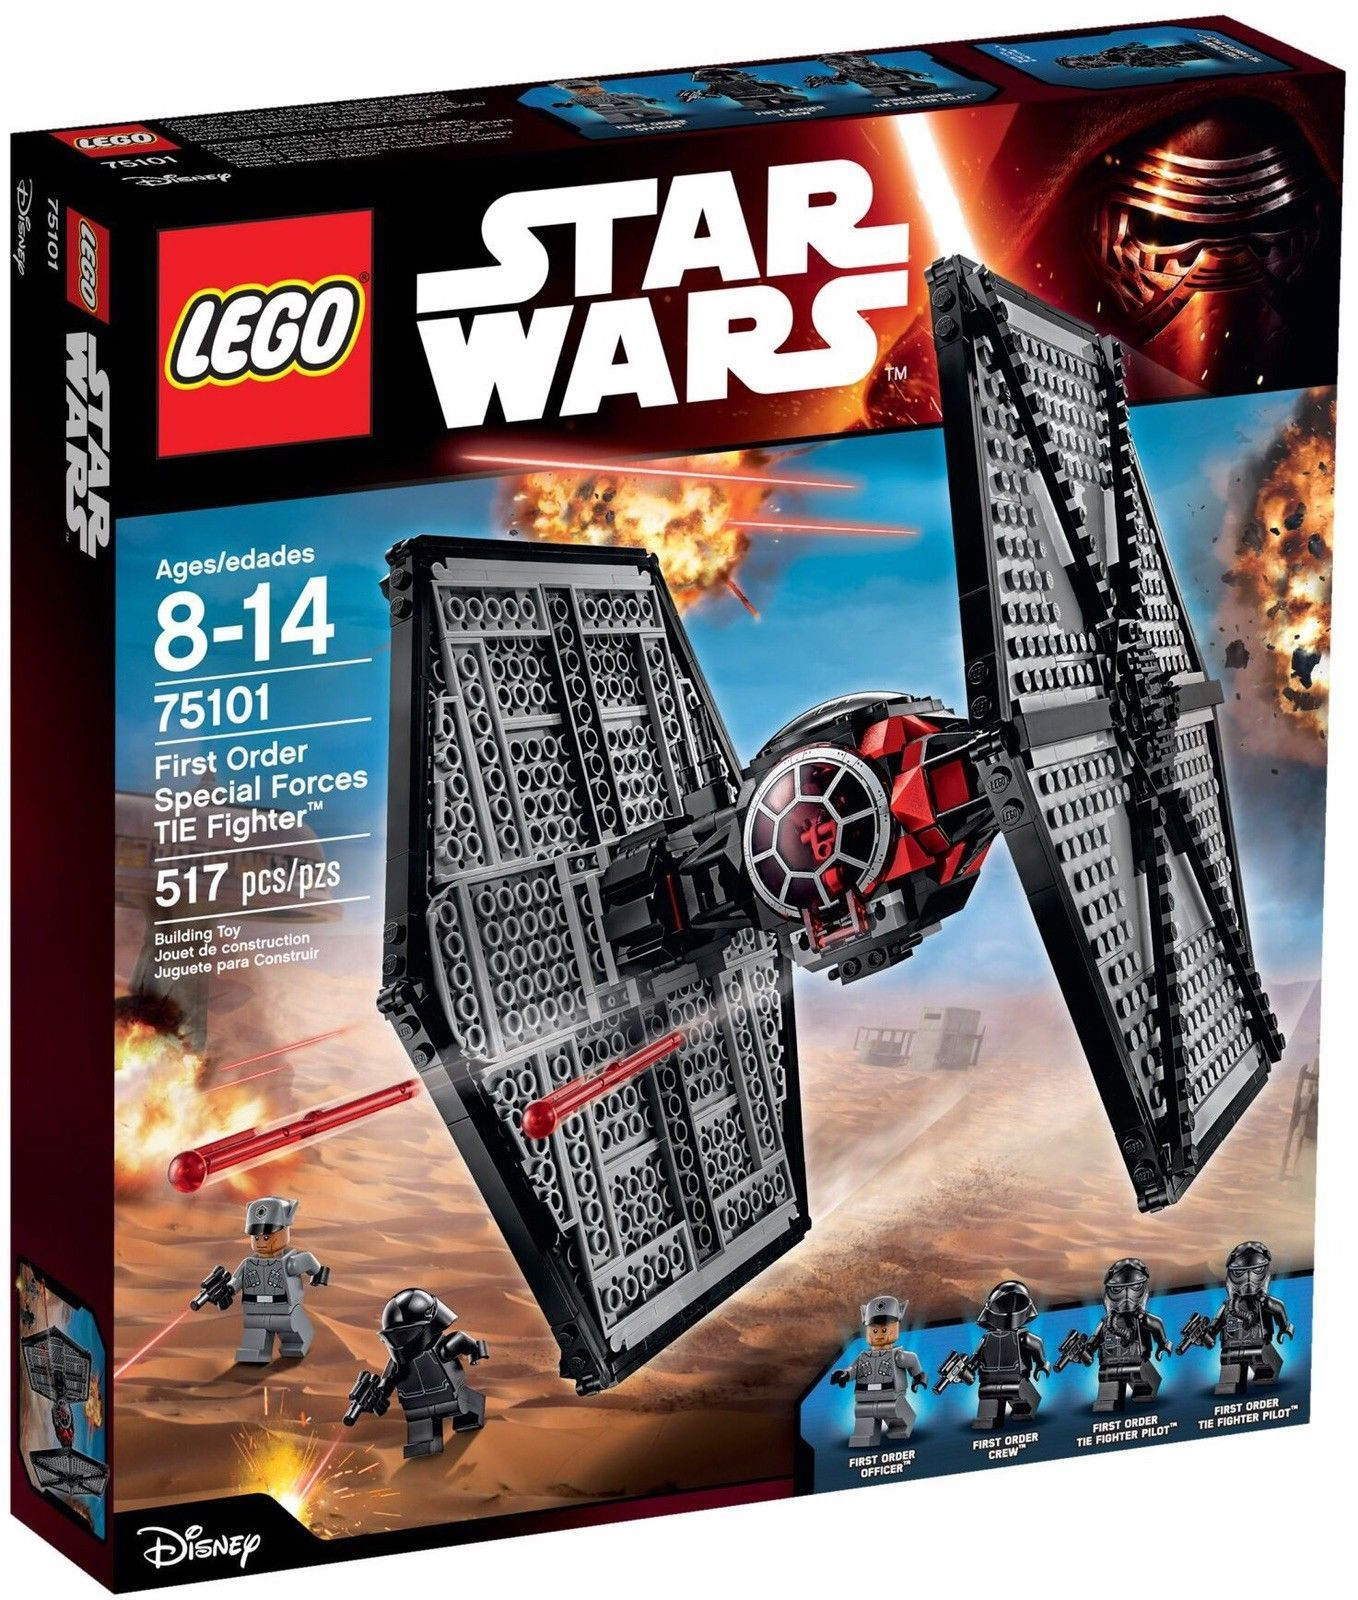 LEGO Star Wars 75101 First Order Special Forces TIE Fighter [New] Building Set